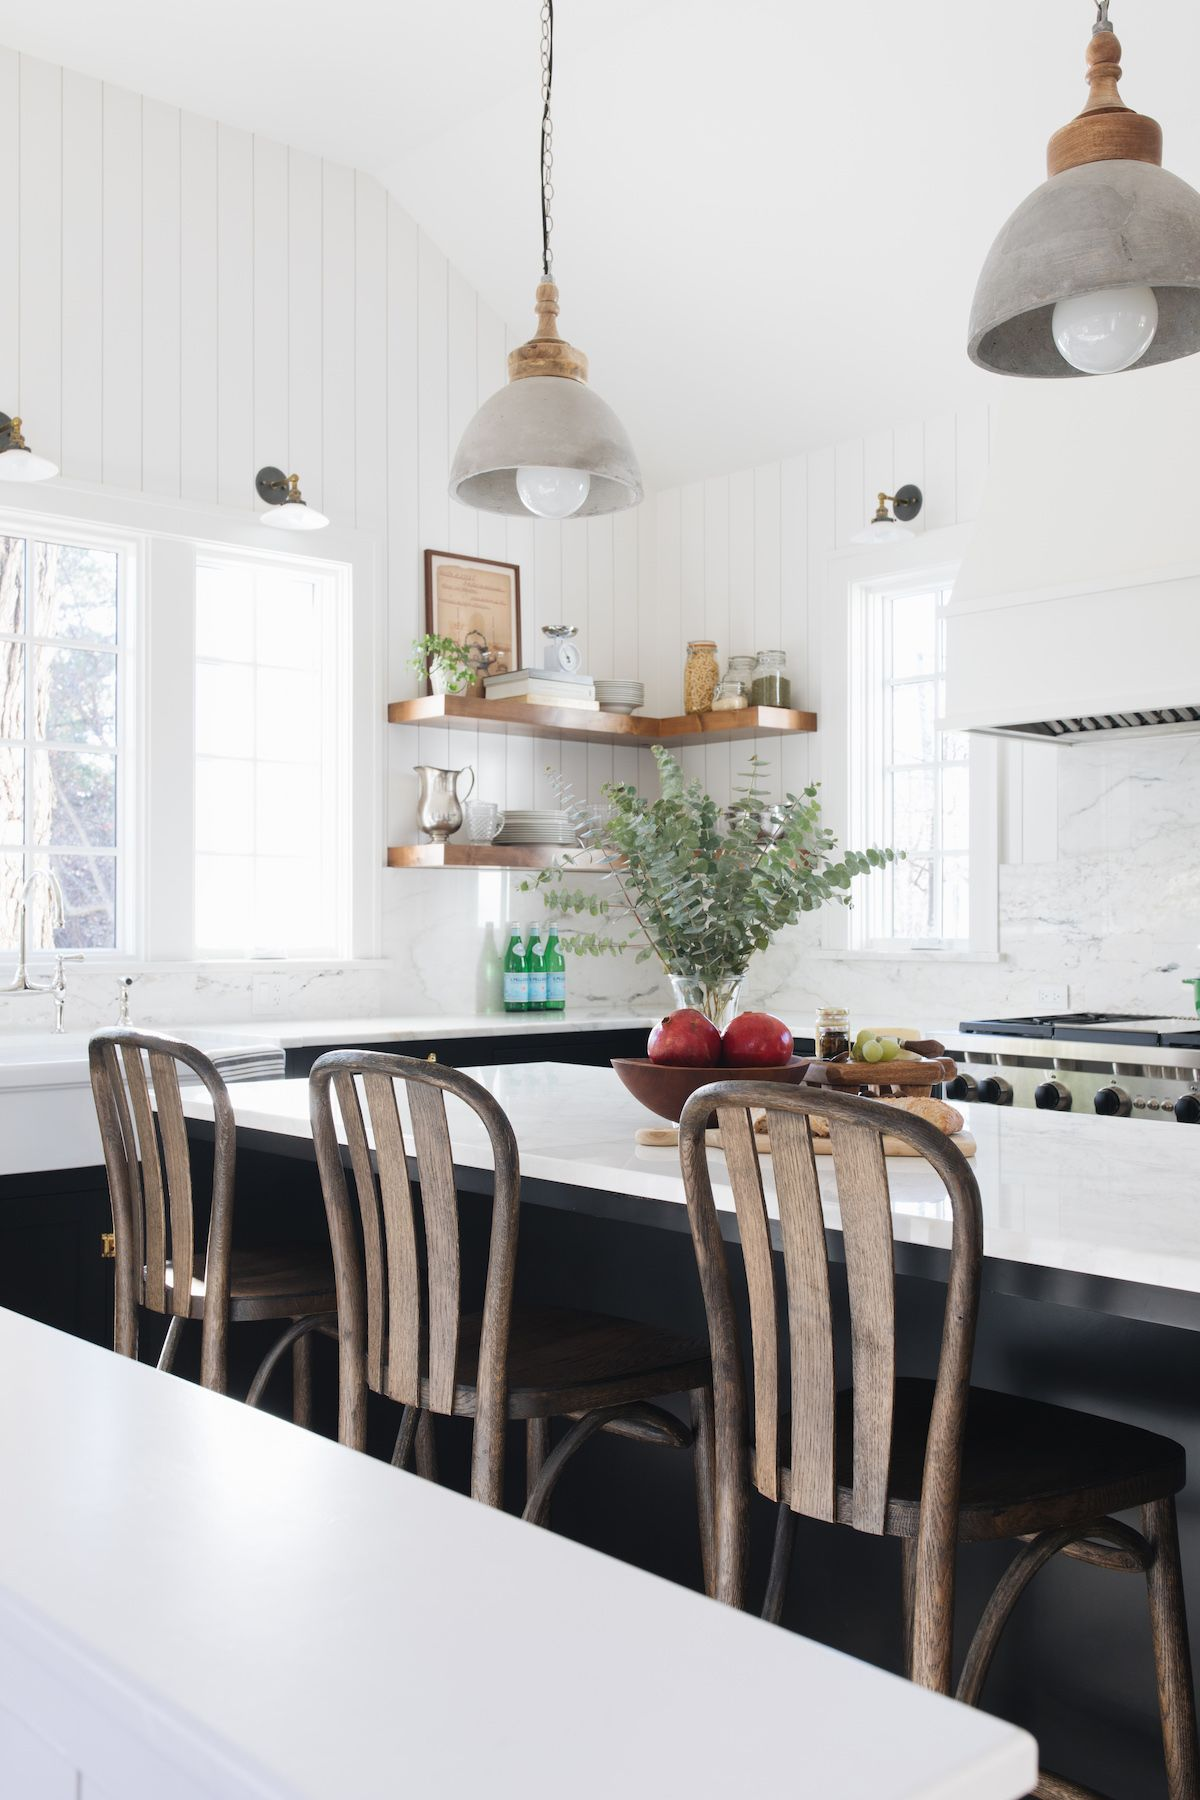 1920 English Cottage Style Home Tour Interview With Redesign Home Farmhouse Lighting Kitchen Island Lighting Pendant Kitchen Pendant Lighting